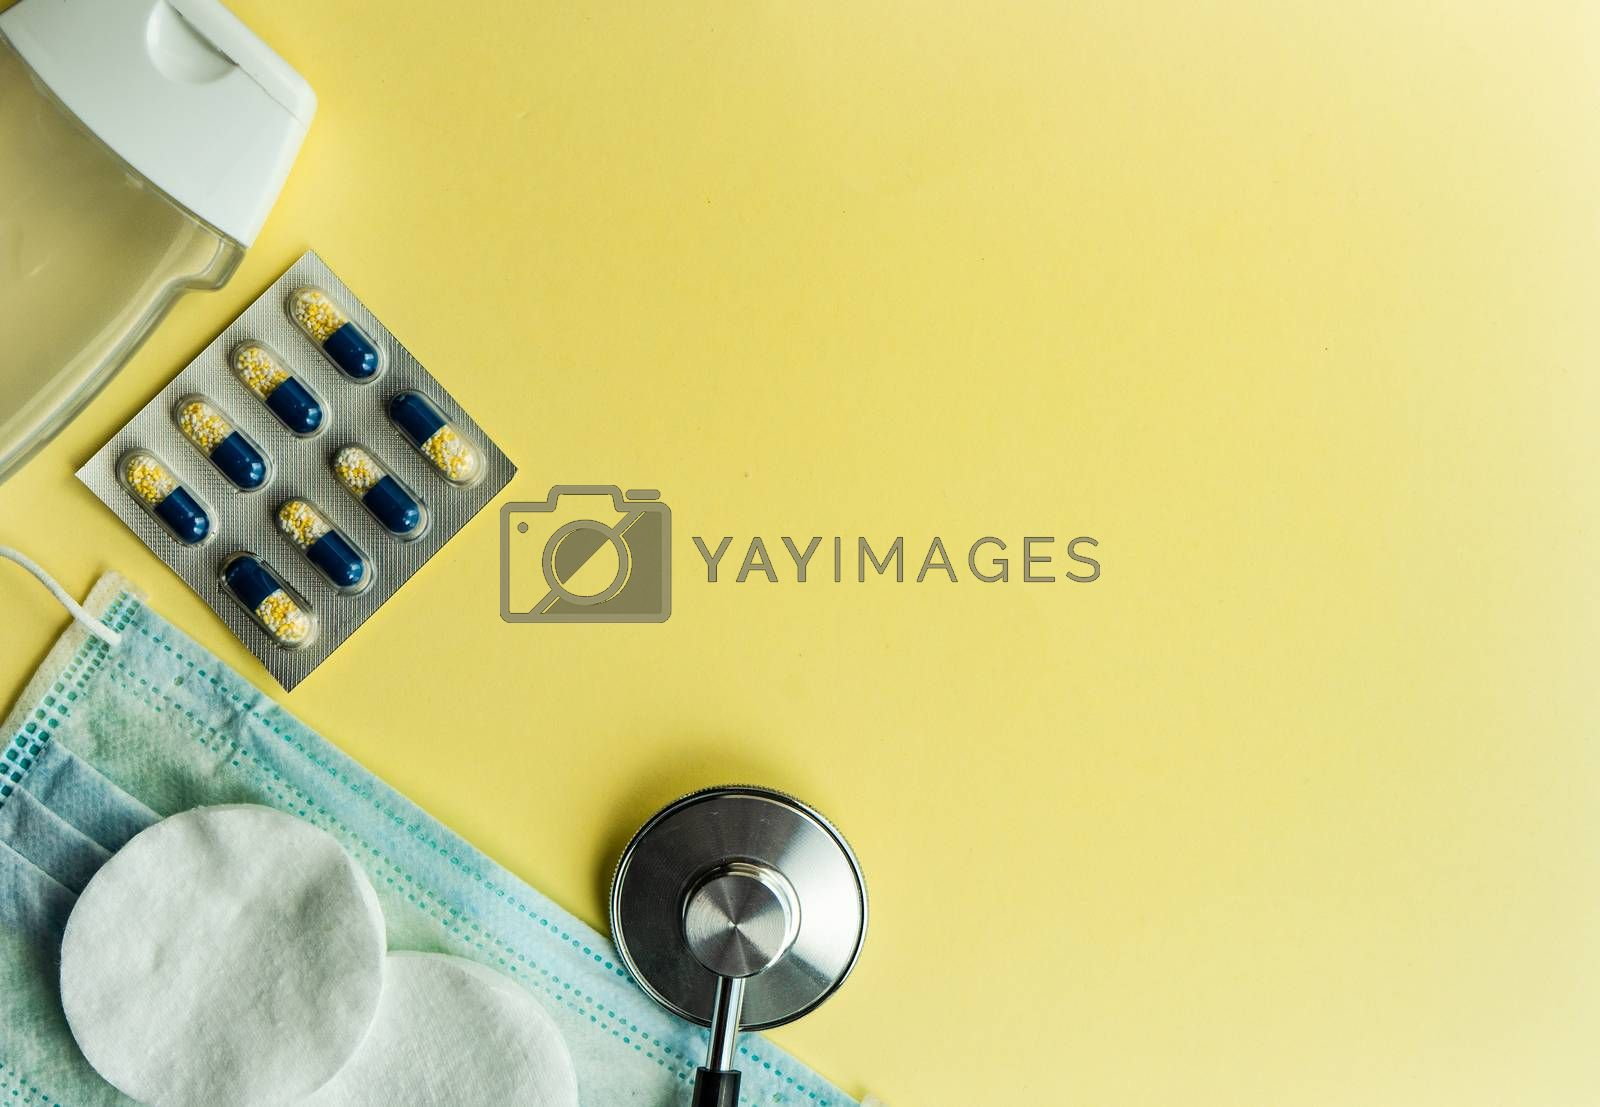 Coronavirus or Covid-19 epidemic healthcare concept on pastel background with copy space